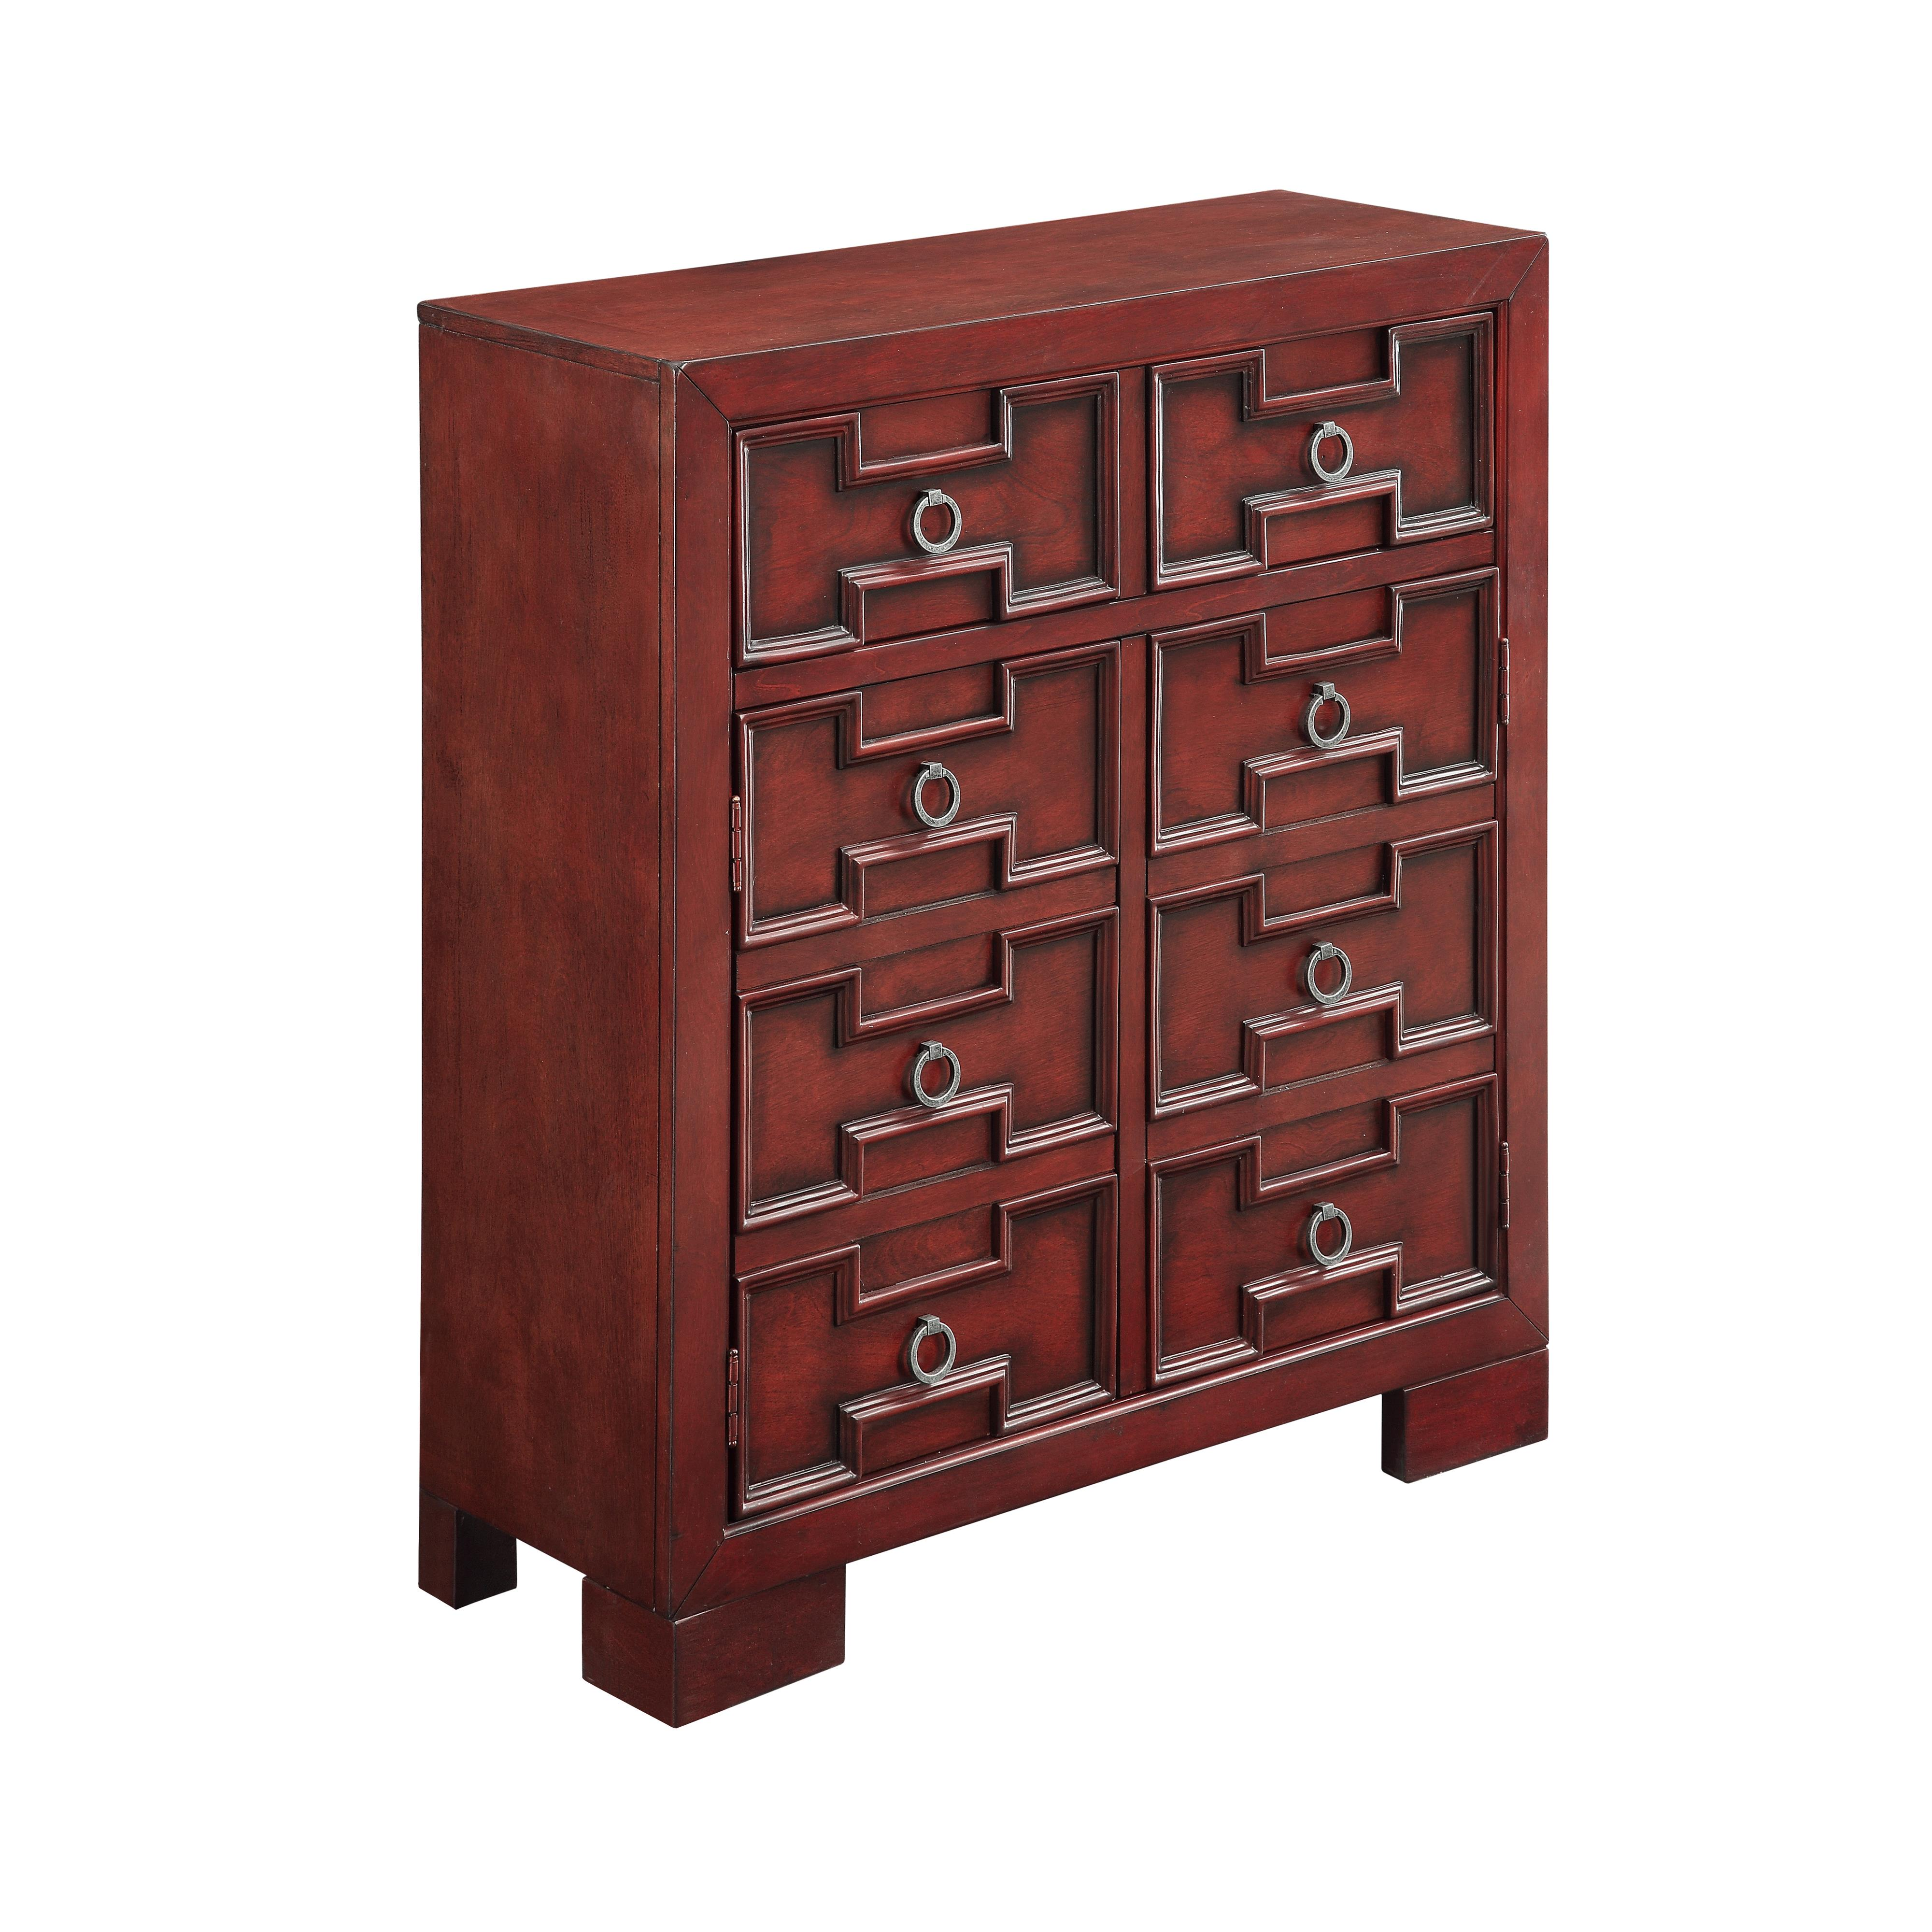 Coast to Coast Imports Coast to Coast Accents Two Door One Drawer Cabinet - Item Number: 70712